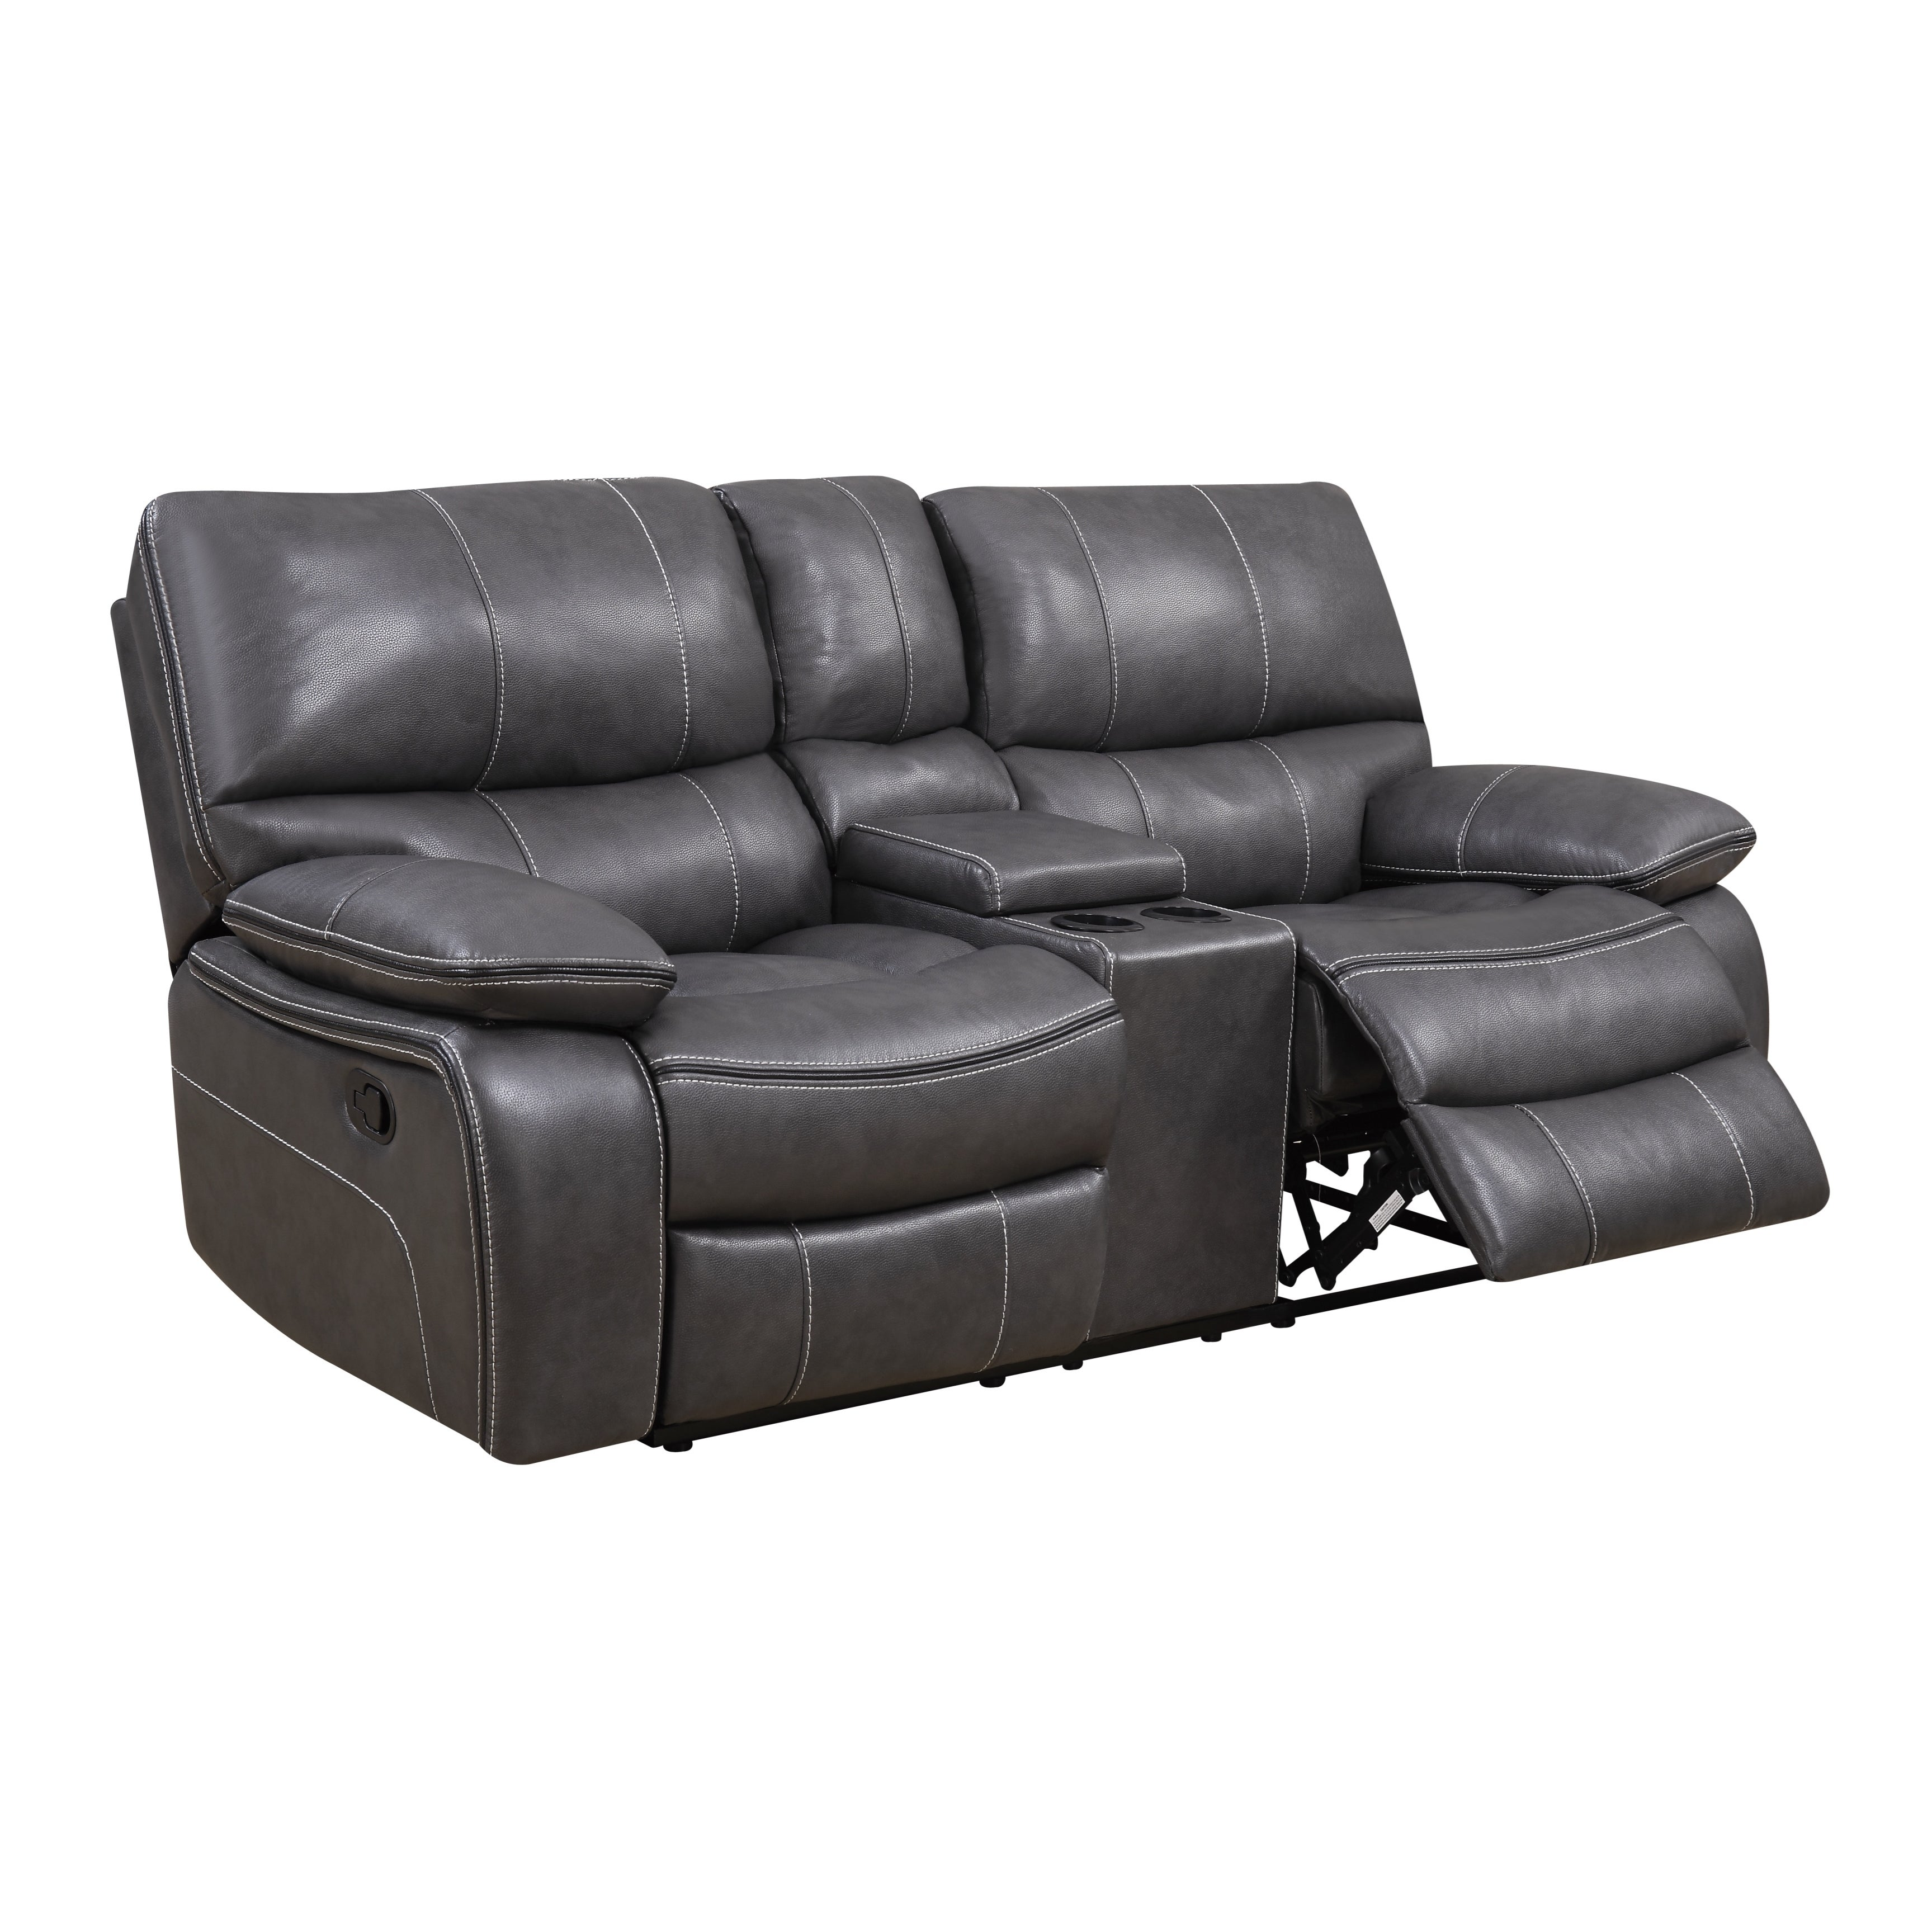 loveseat spaces console added pdp qty to reclining cart living your darwin has been taupe power w wconsole successfully